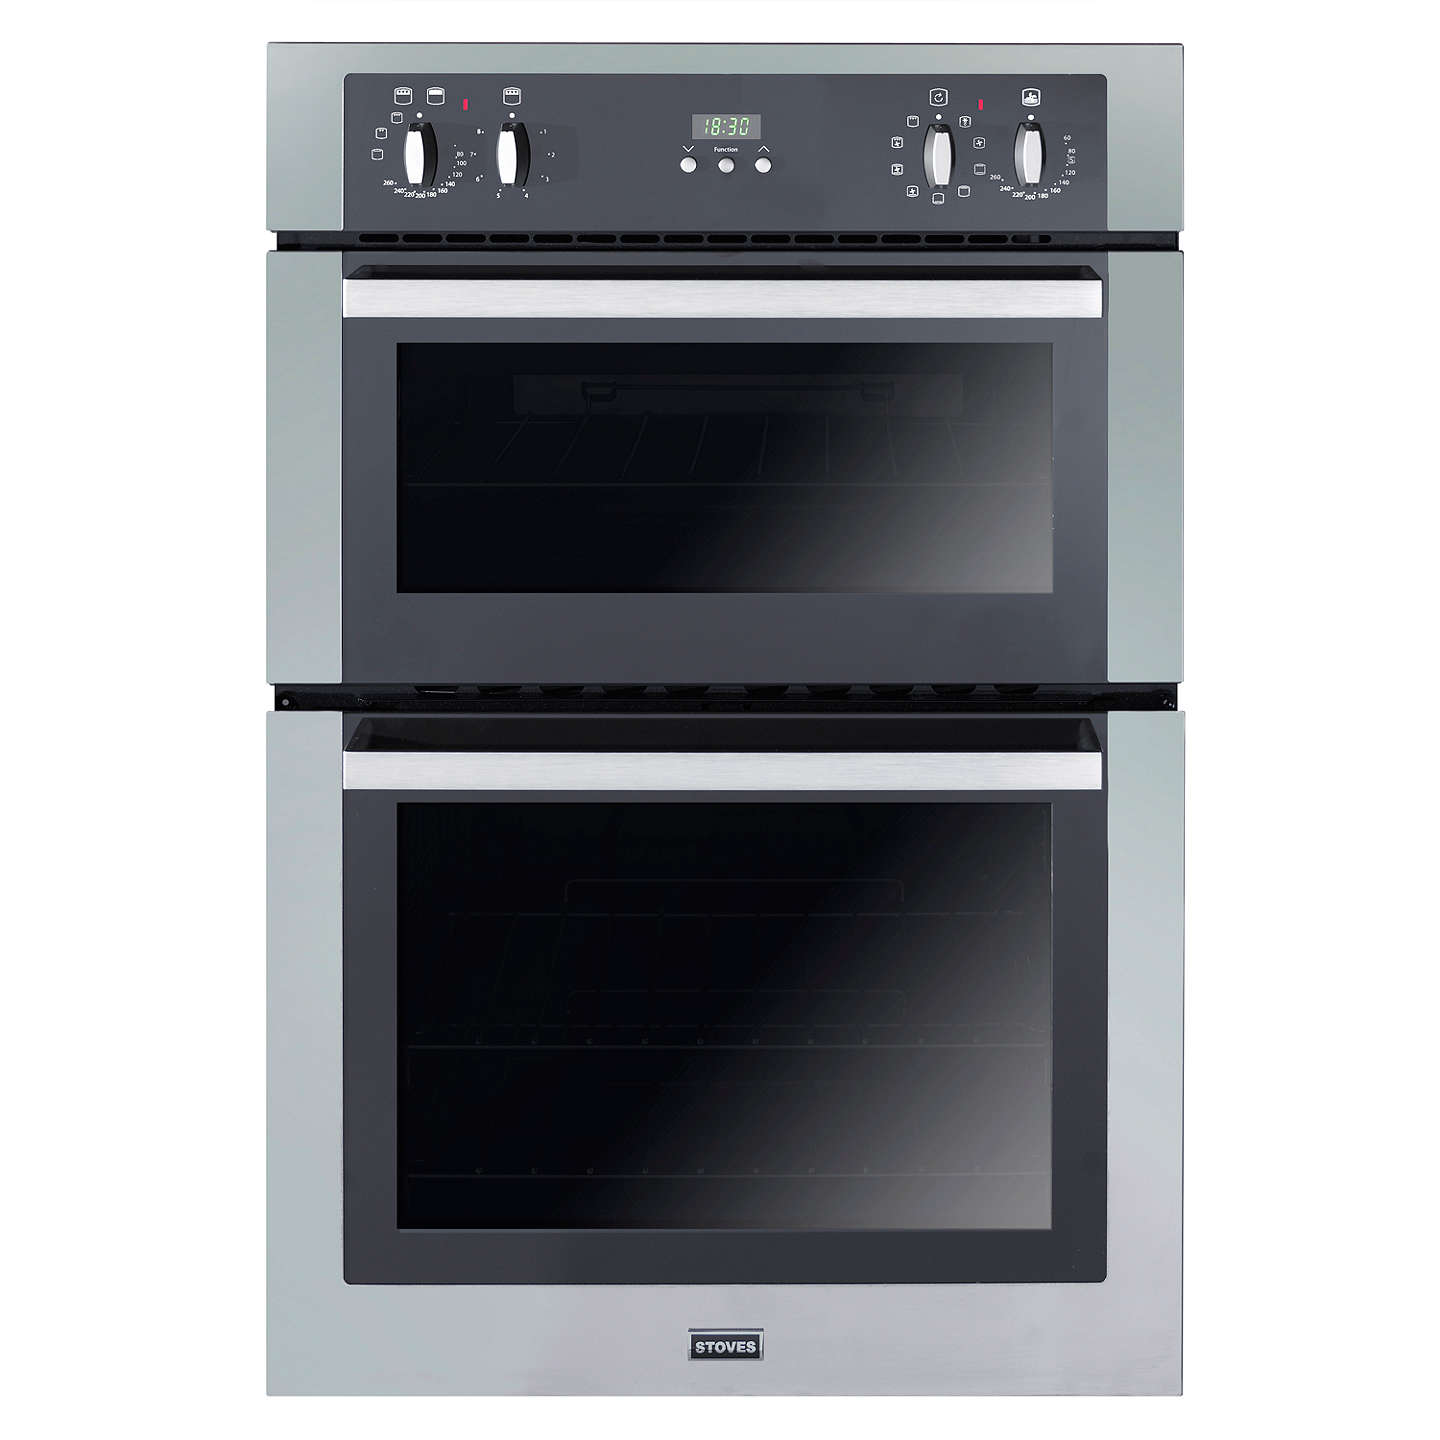 stoves seb900mfs double electric oven stainless steel at. Black Bedroom Furniture Sets. Home Design Ideas